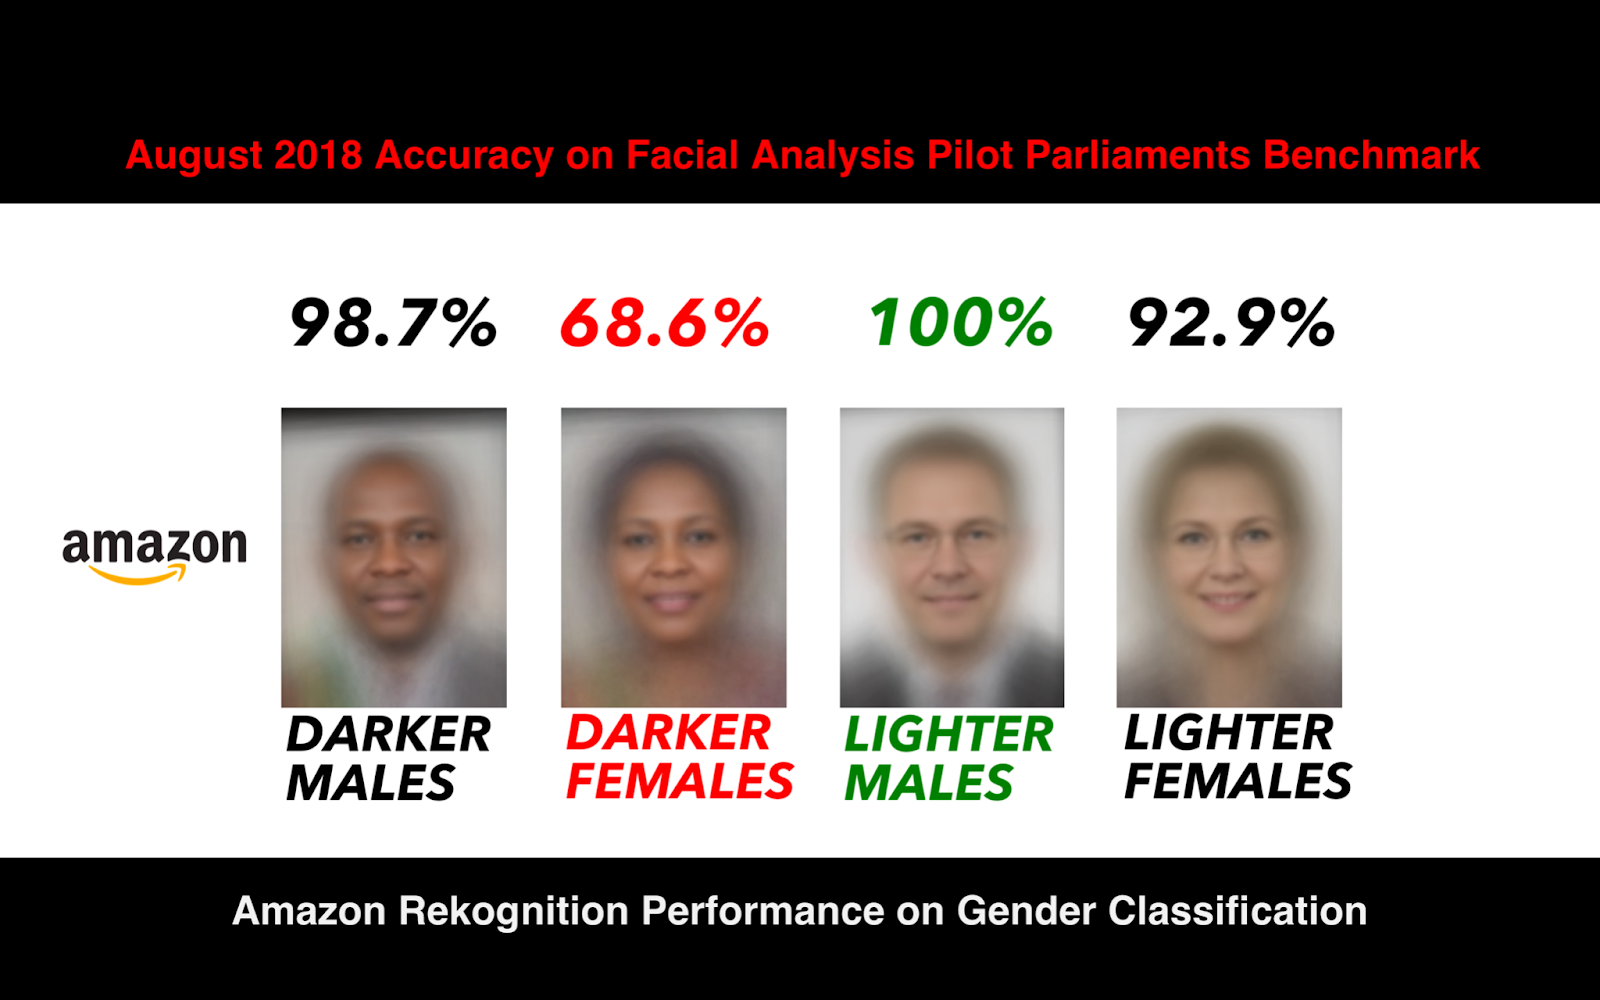 Depicting bias in AI facial recognition:  100% success on lighter males, 98.7% on Darker males, 92.9% on lighter females, 68.6% on darker females.